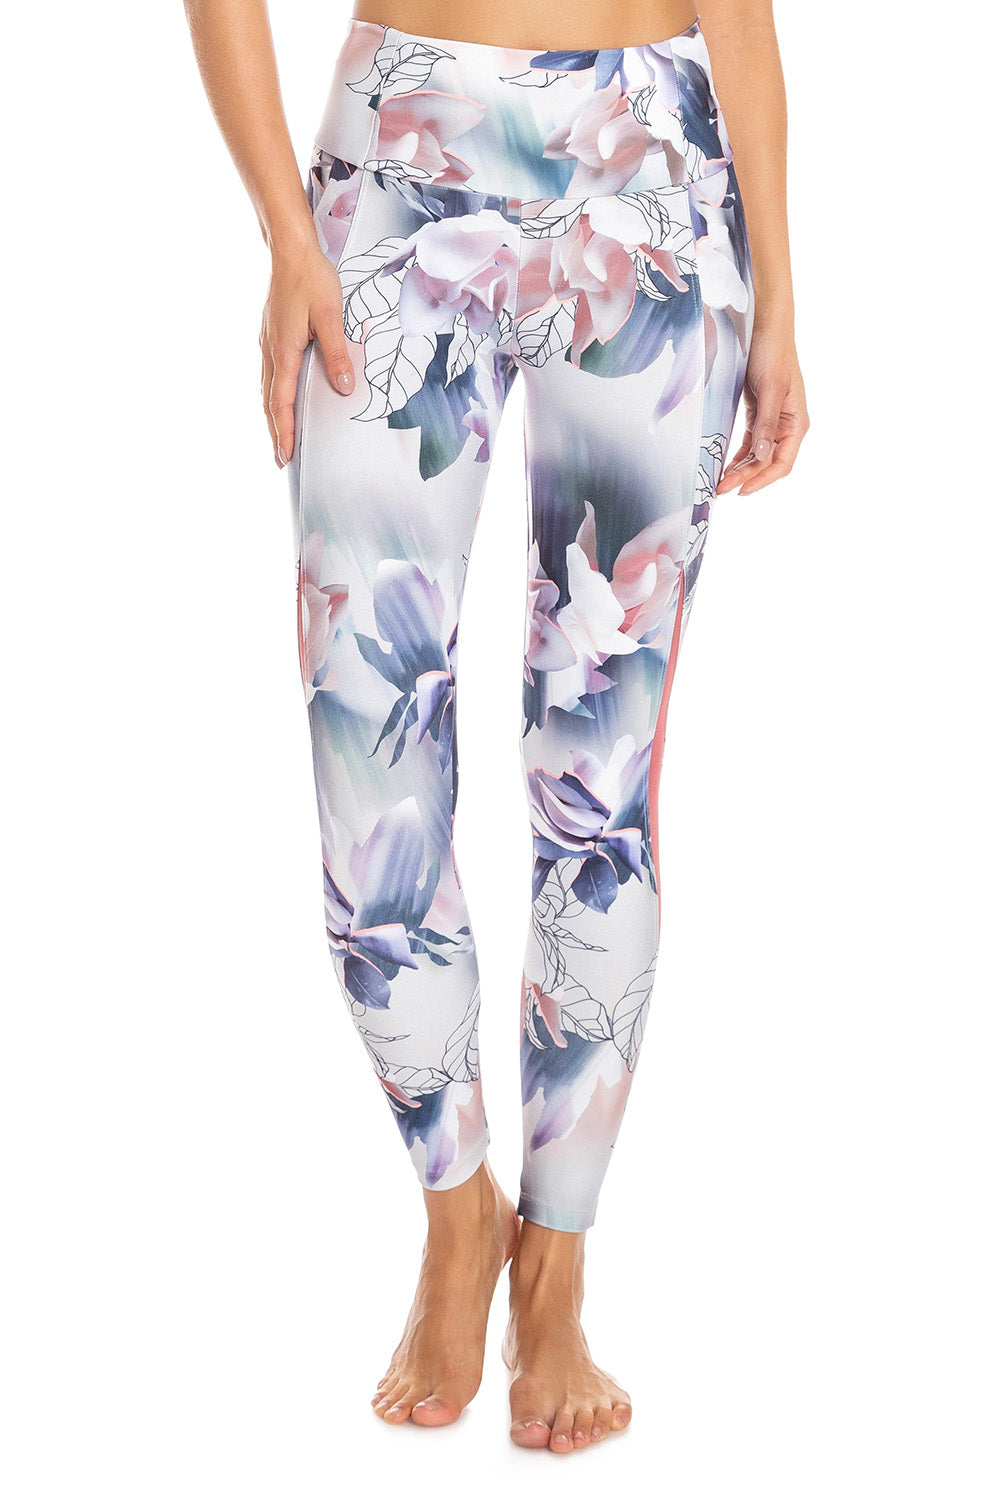 Blossom Blur Tight 1